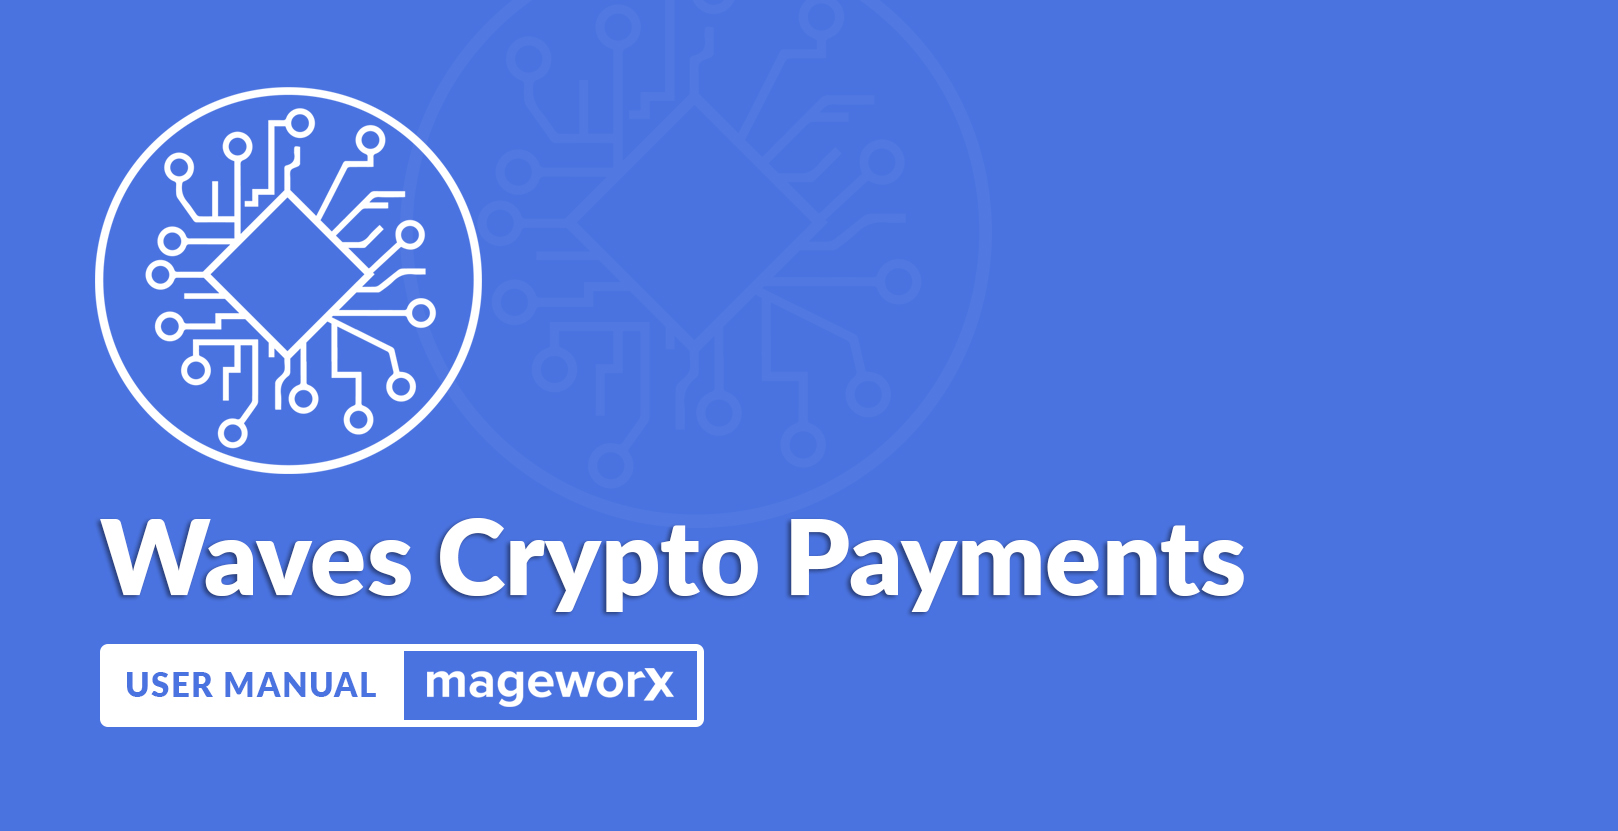 WAVES Crypto Payments Cover